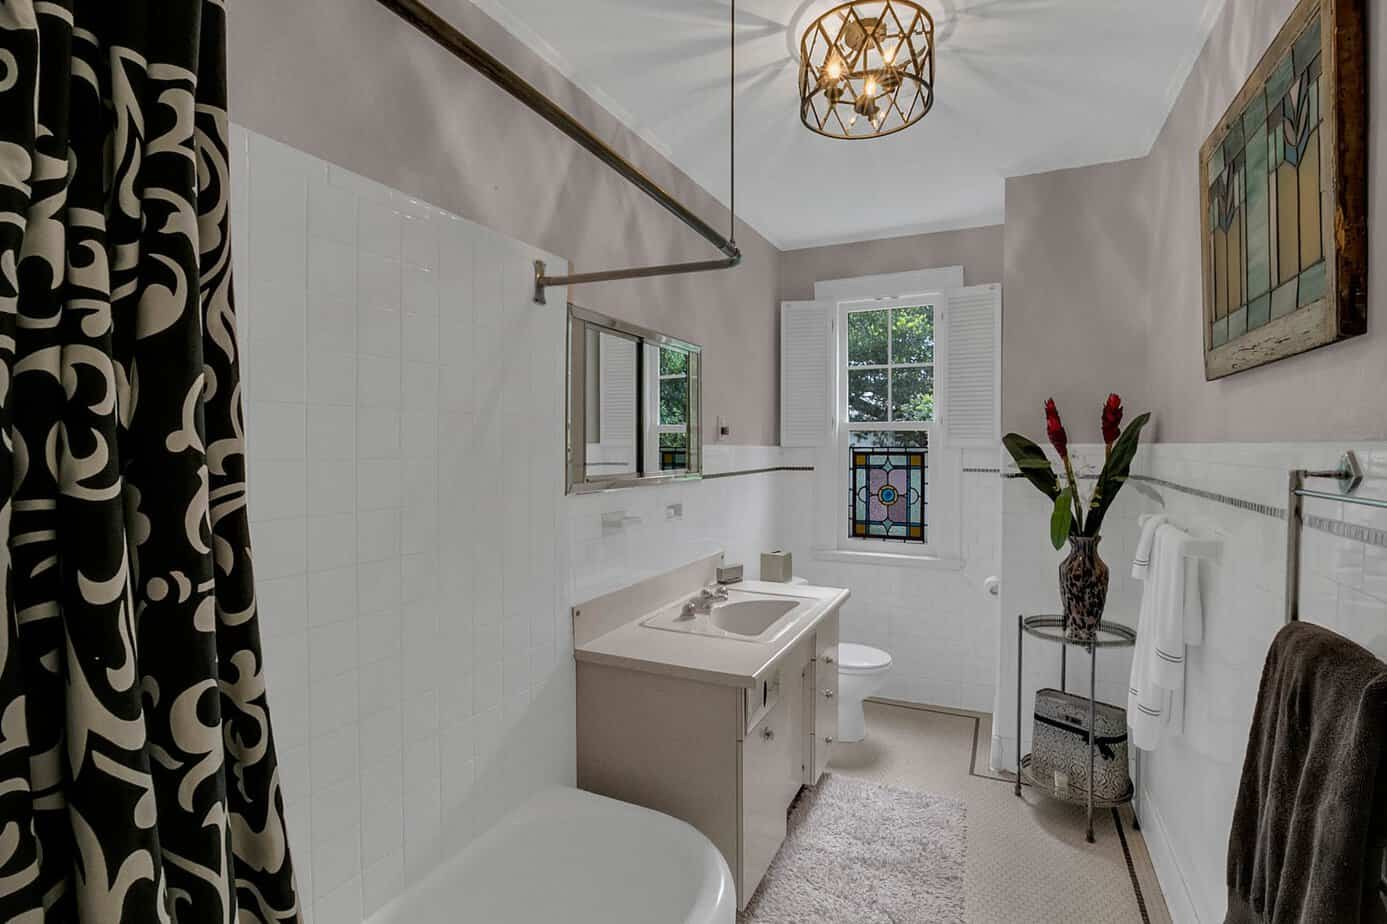 Bathroom with white tub and tile, sink, toilet, and decorative light fixture for the home for sale at 4024 W Bay to Bay Tampa FL 33629